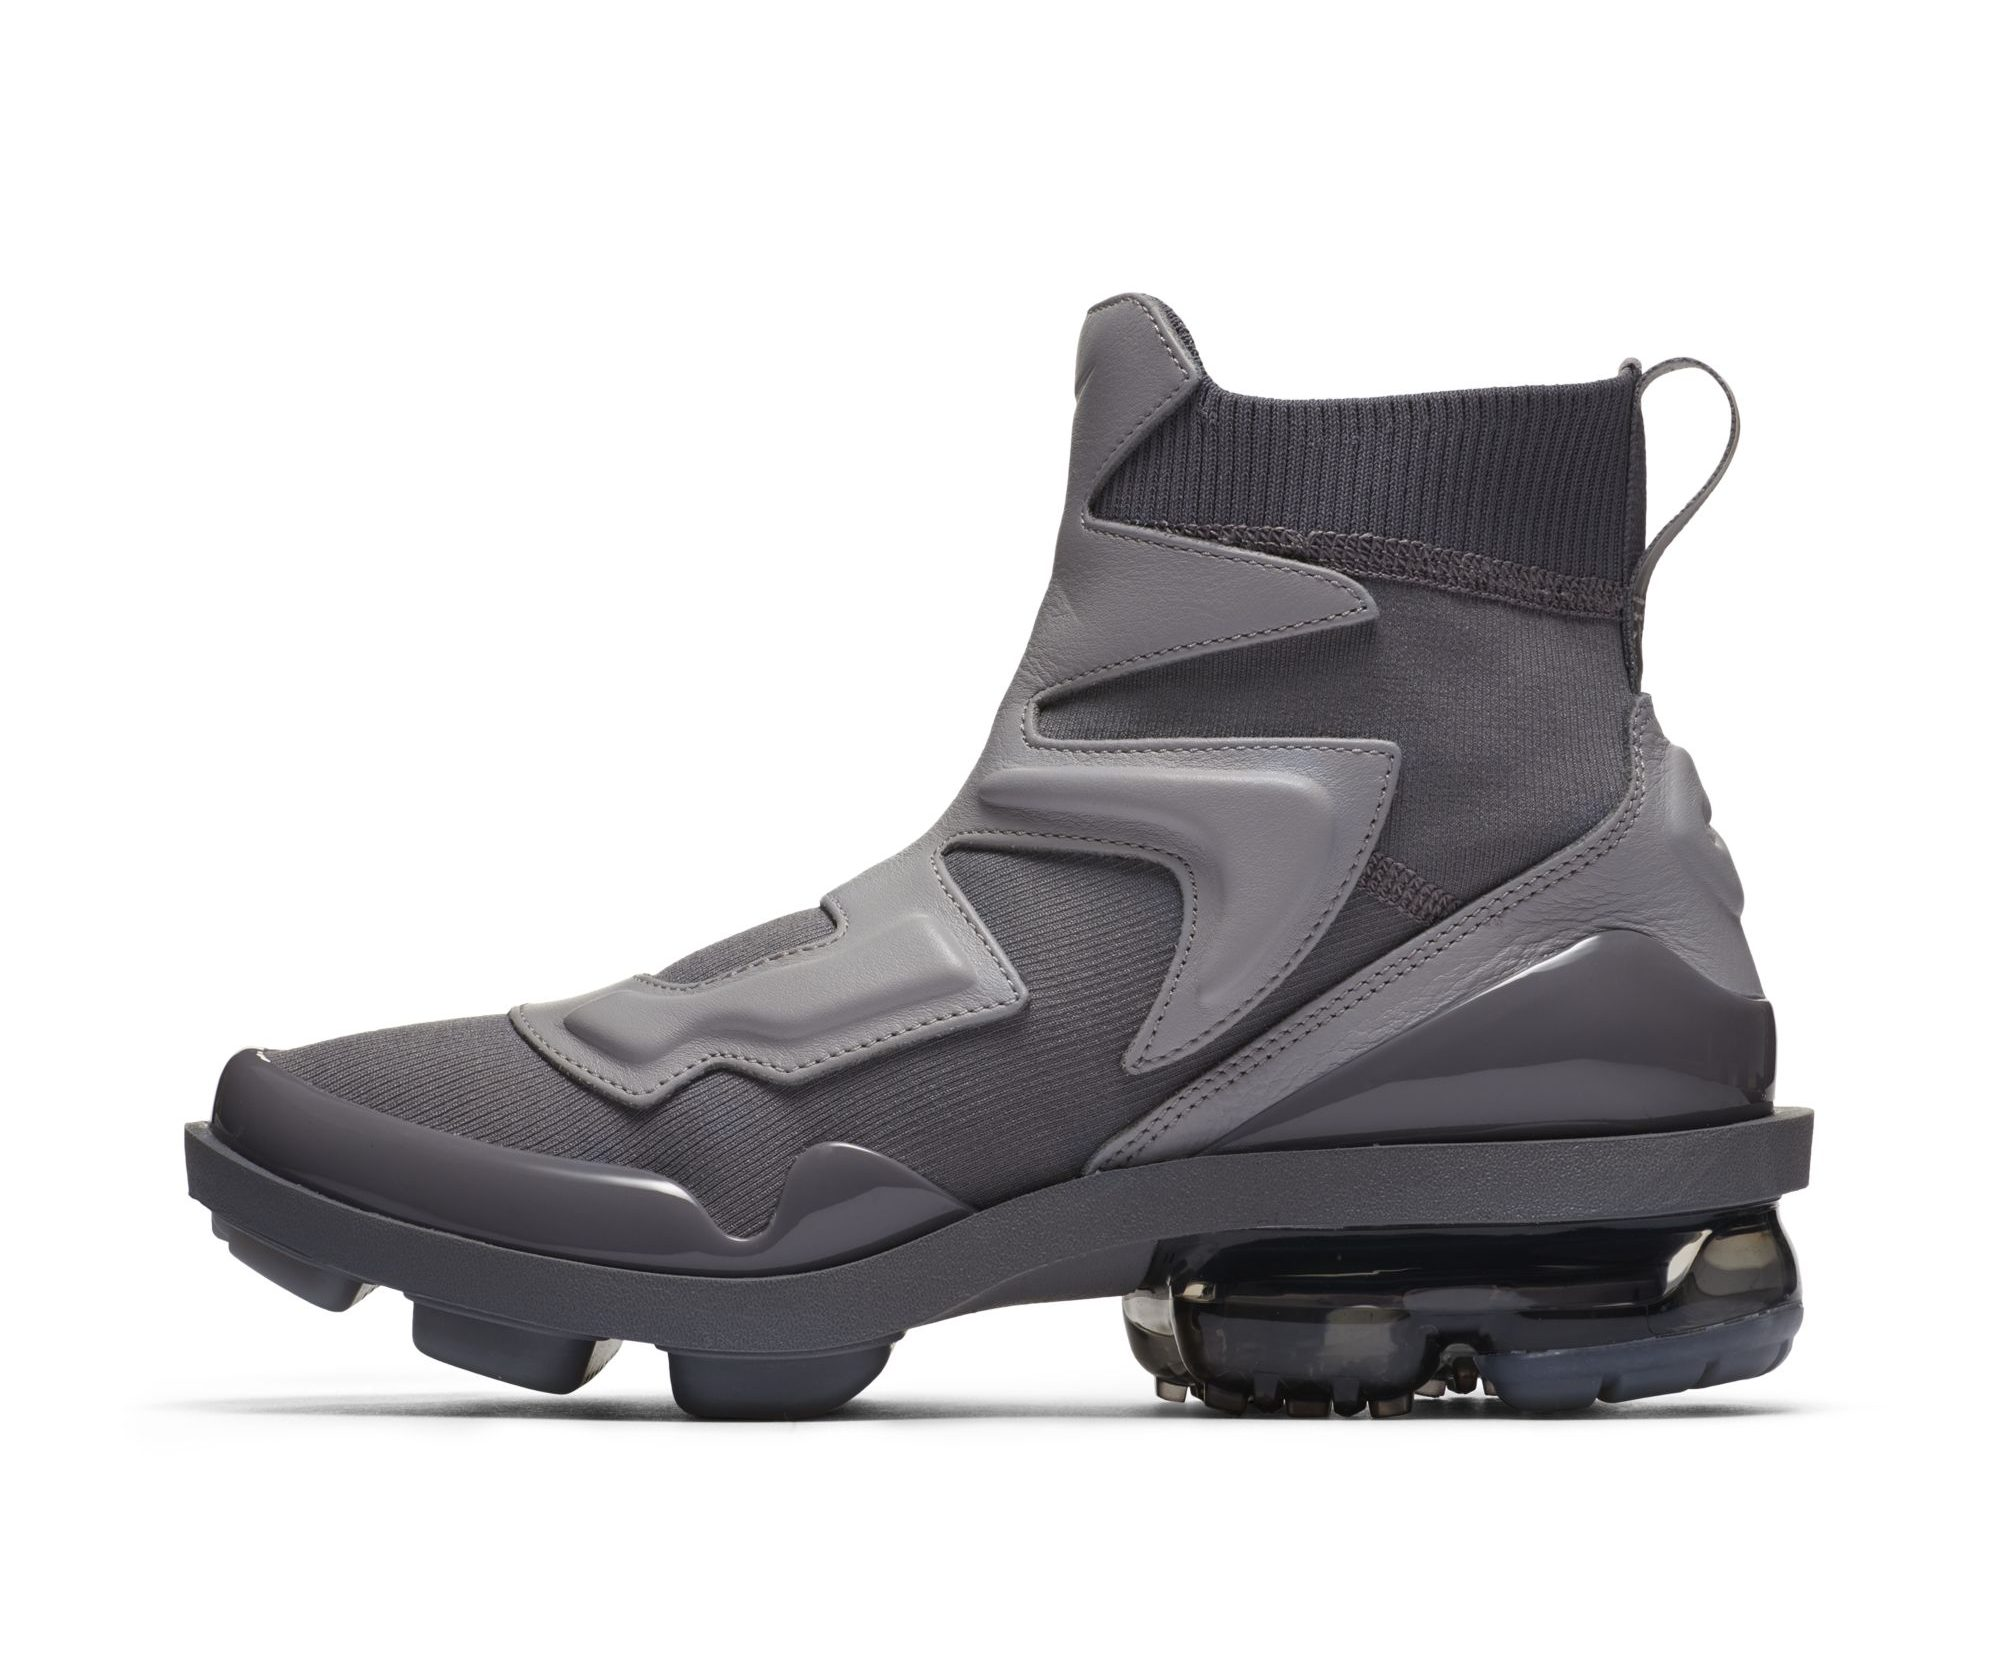 brand new 1af4a 3ceab Knit Nike Air VaporMax Boots are Coming - WearTesters